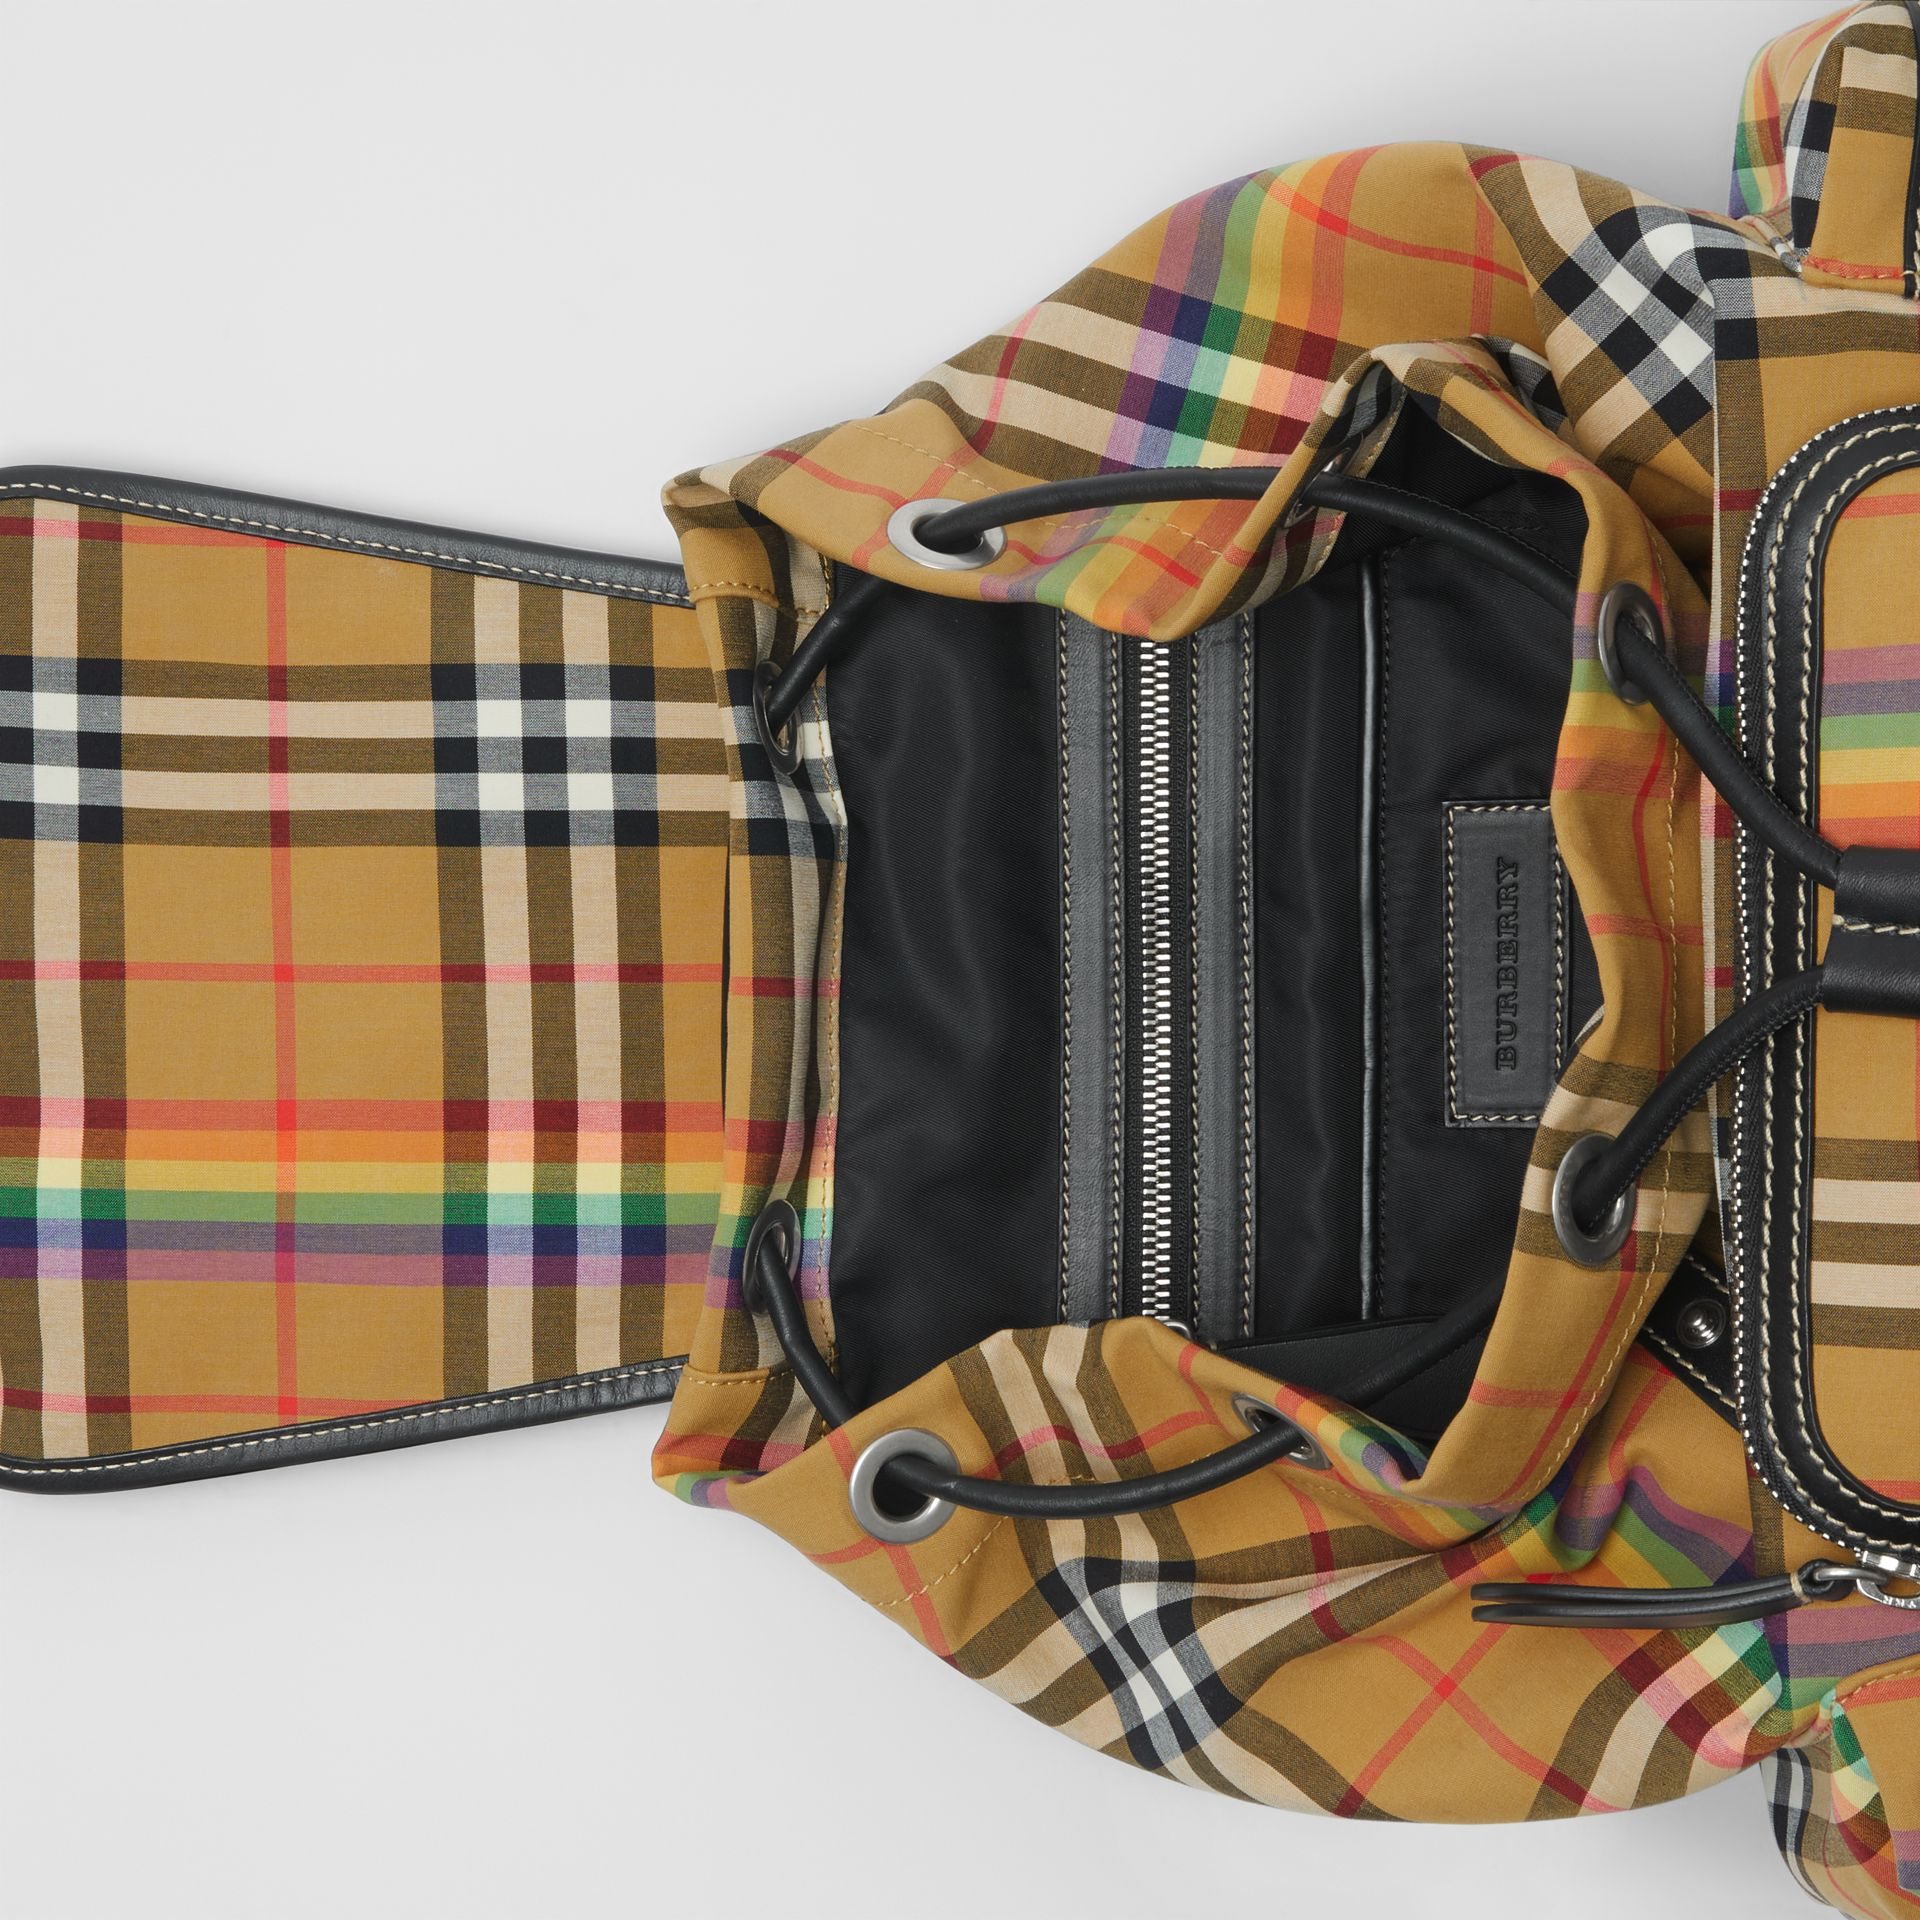 Sac The Rucksack moyen à motif Rainbow Vintage check (Jaune Antique) - Femme | Burberry - photo de la galerie 5